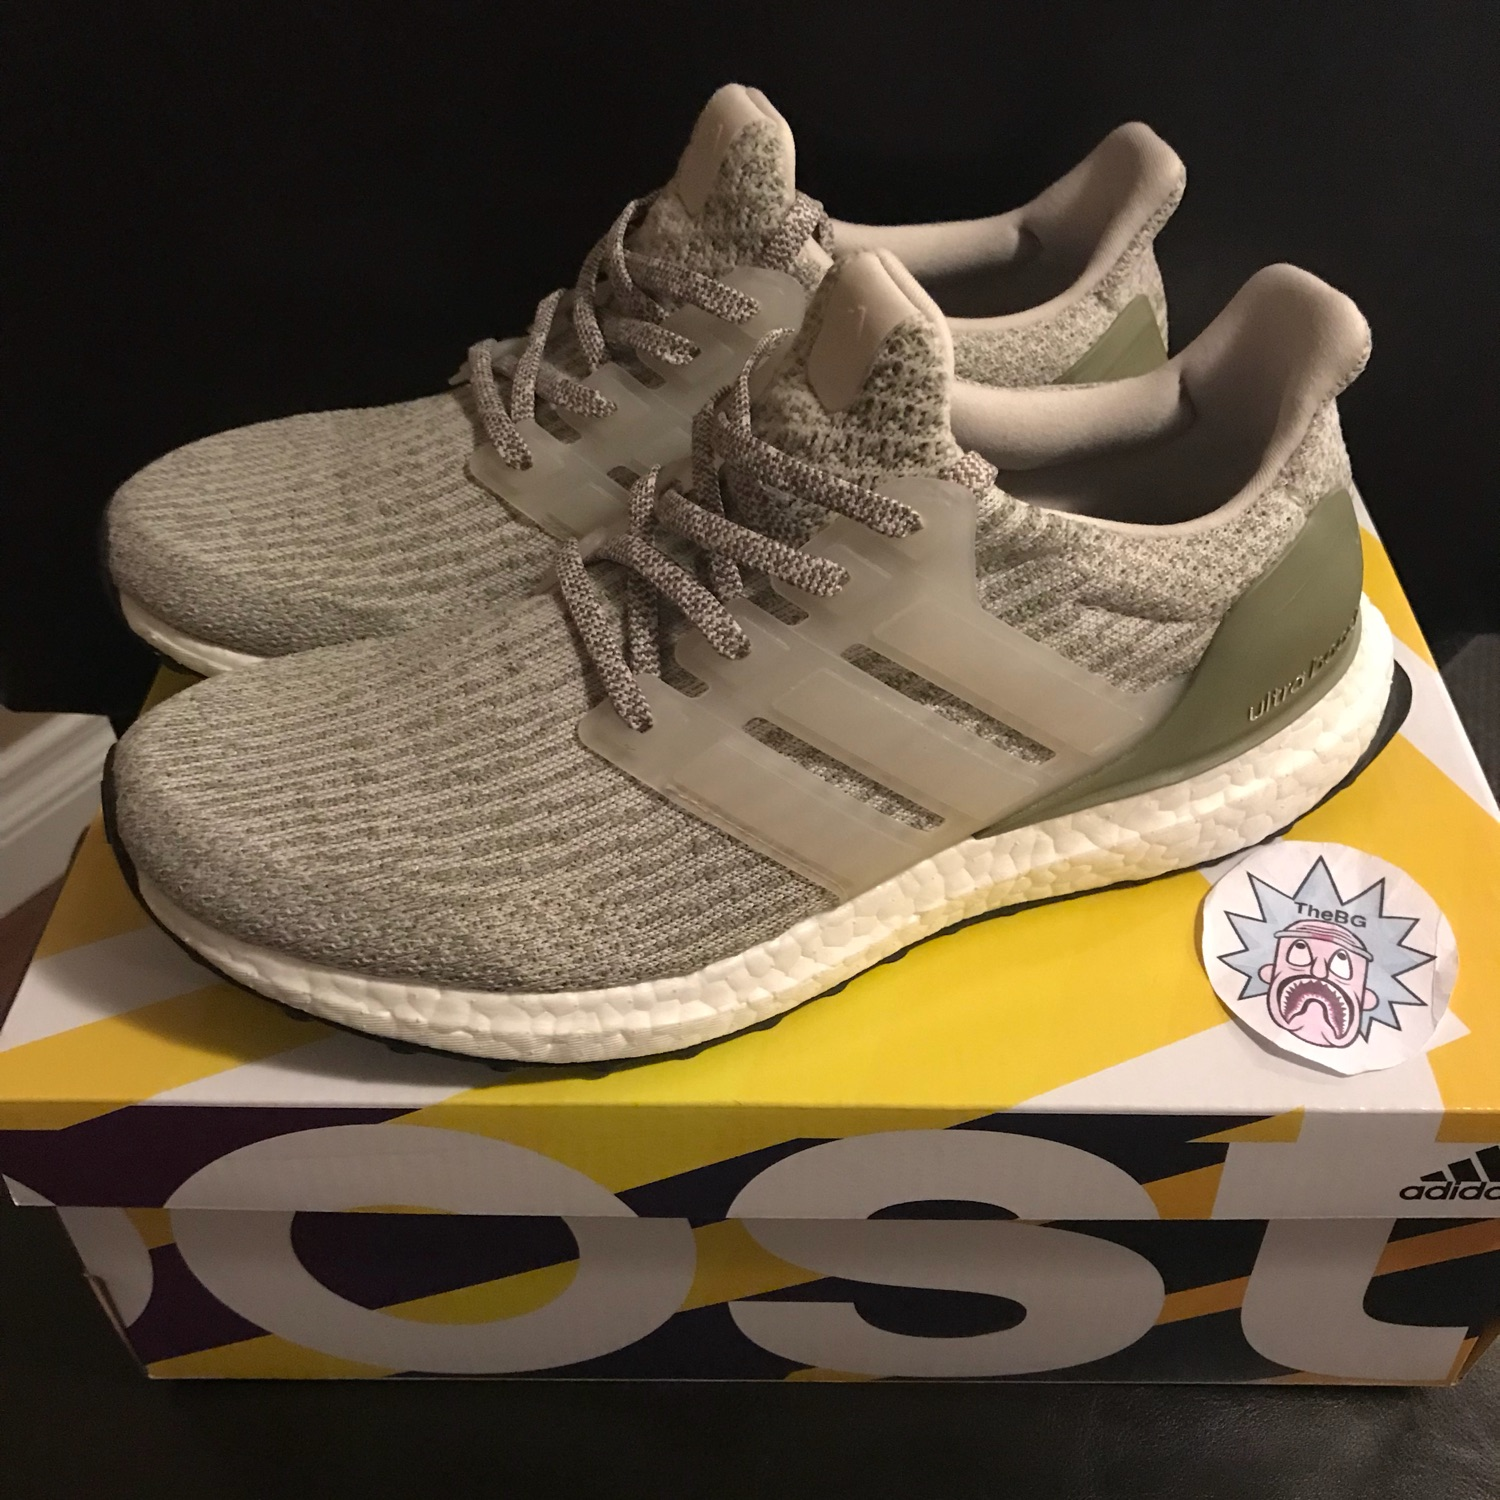 separation shoes ee400 fa123 Adidas Ultra Boost 3.0 Olive Copper